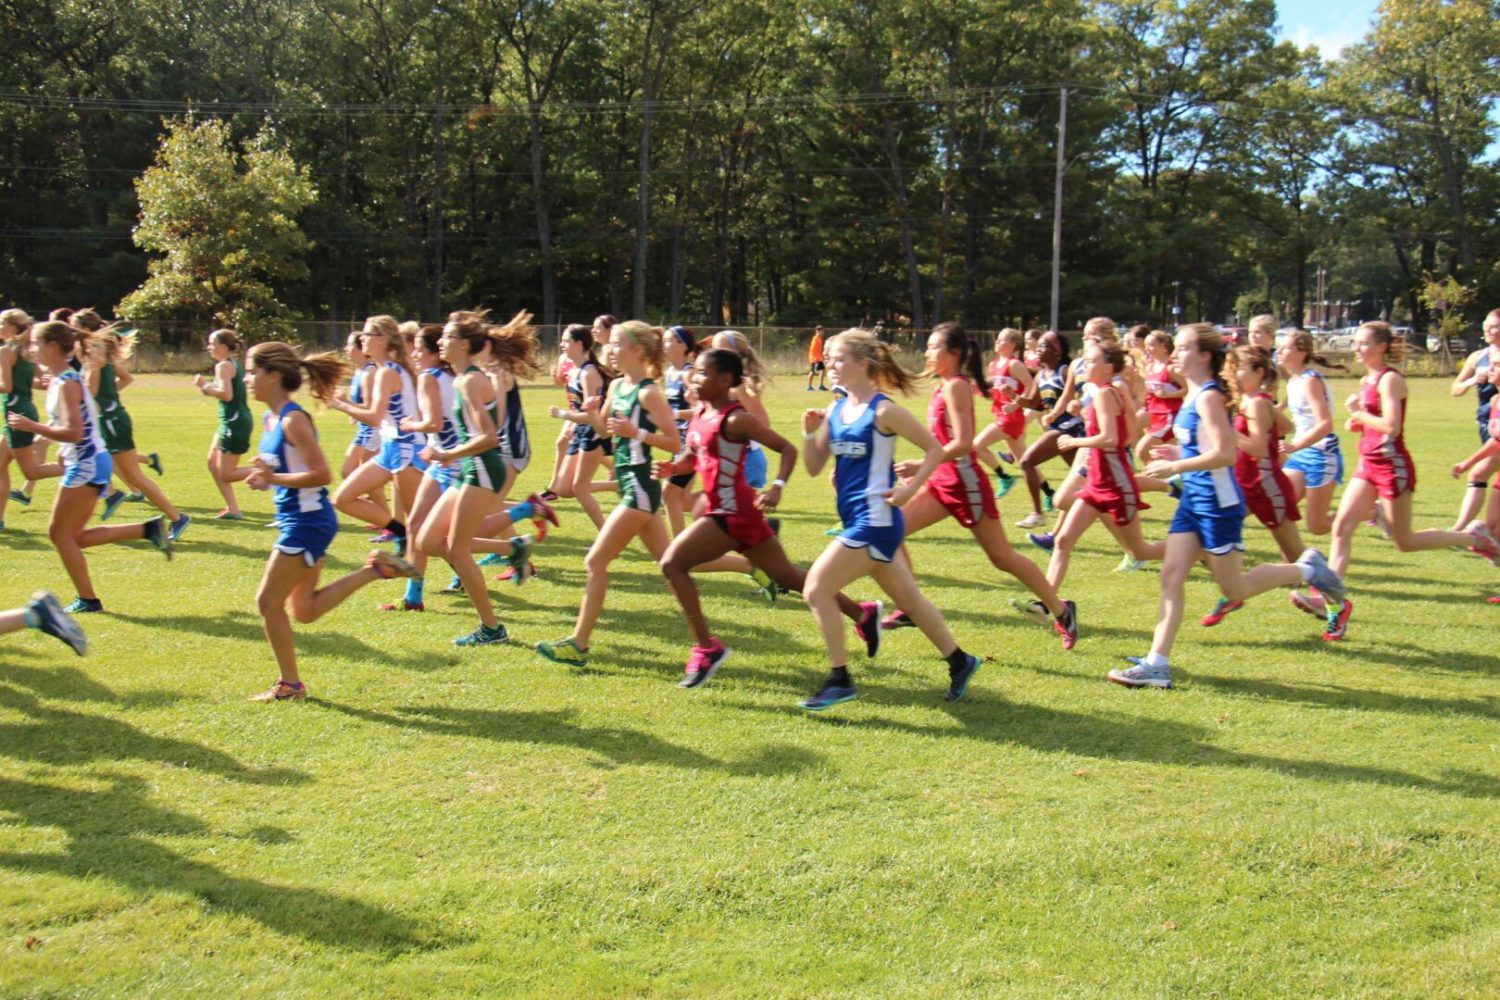 [VIDEO] Highlights from the GMAA City Cross Country Championships